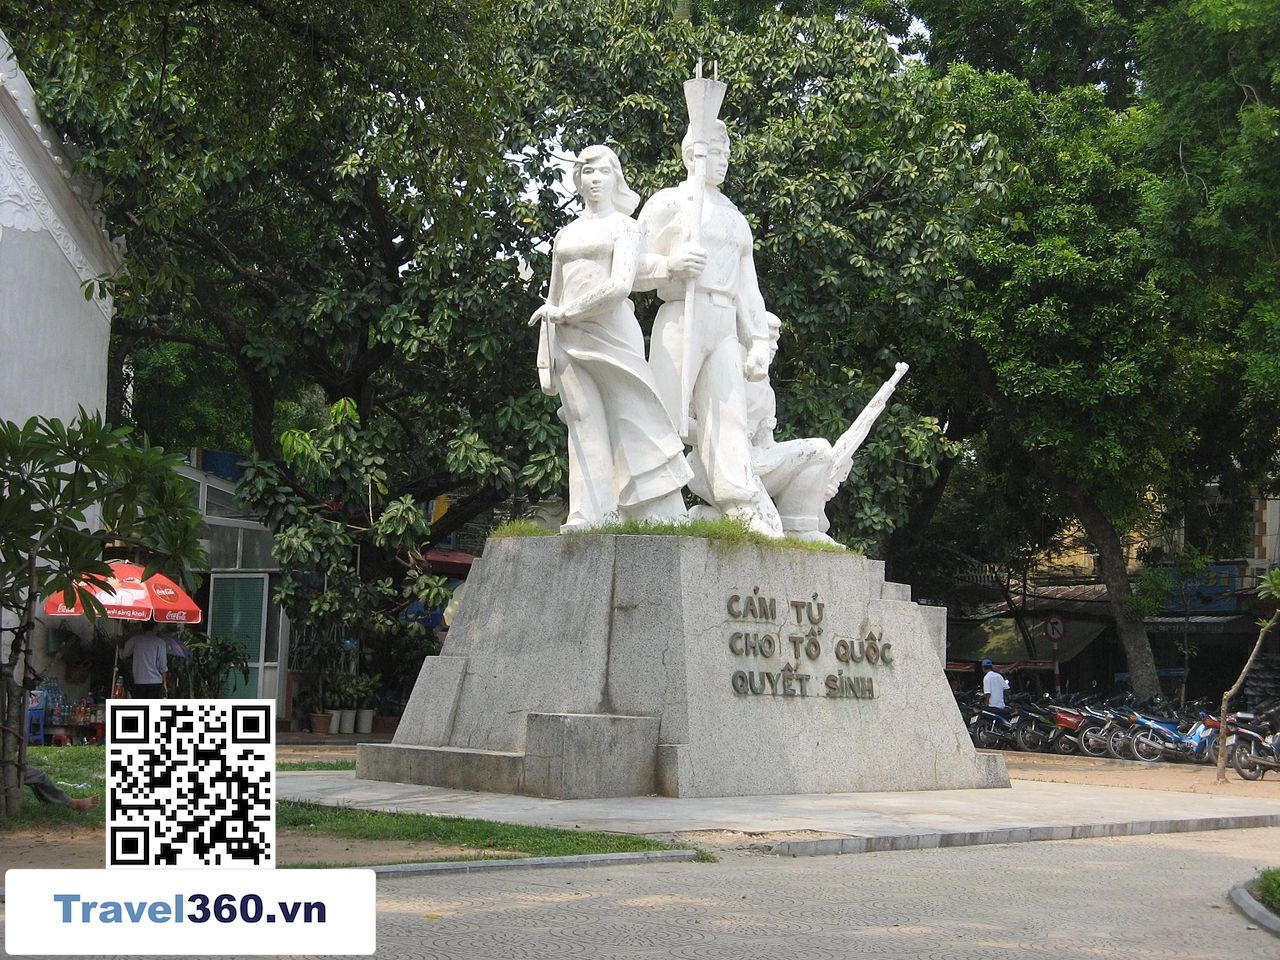 tuong dai quyet tu cho to quoc quyet sinh